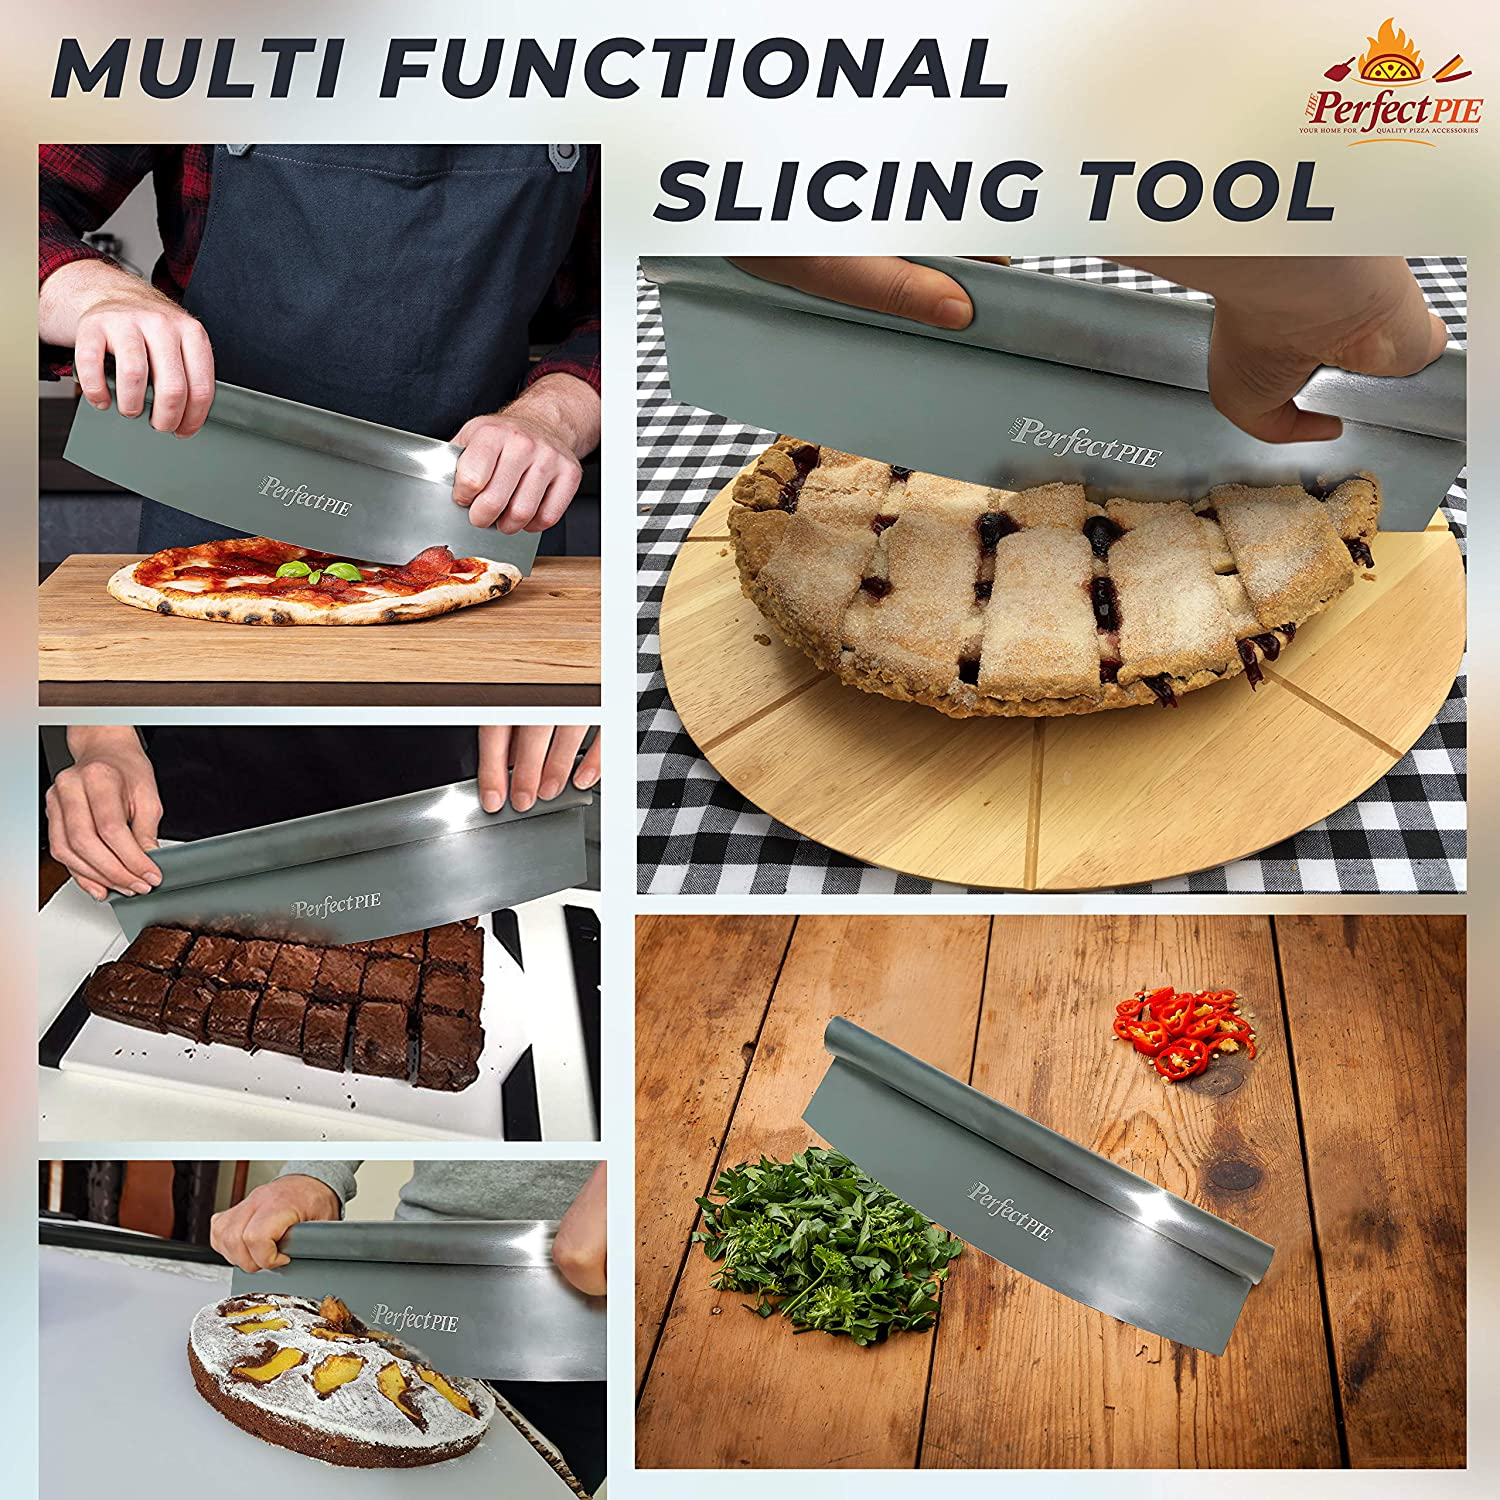 """The Perfect Pie 14"""" Pizza Cutter Rocker Heavy Duty Stainless Steel Pizza Slicer With Protective Cover, Pizza Chopper Accessories Premium Knife Tools For Pizzas Breads Cheeses Cakes Vegetables: Kitchen & Dining"""